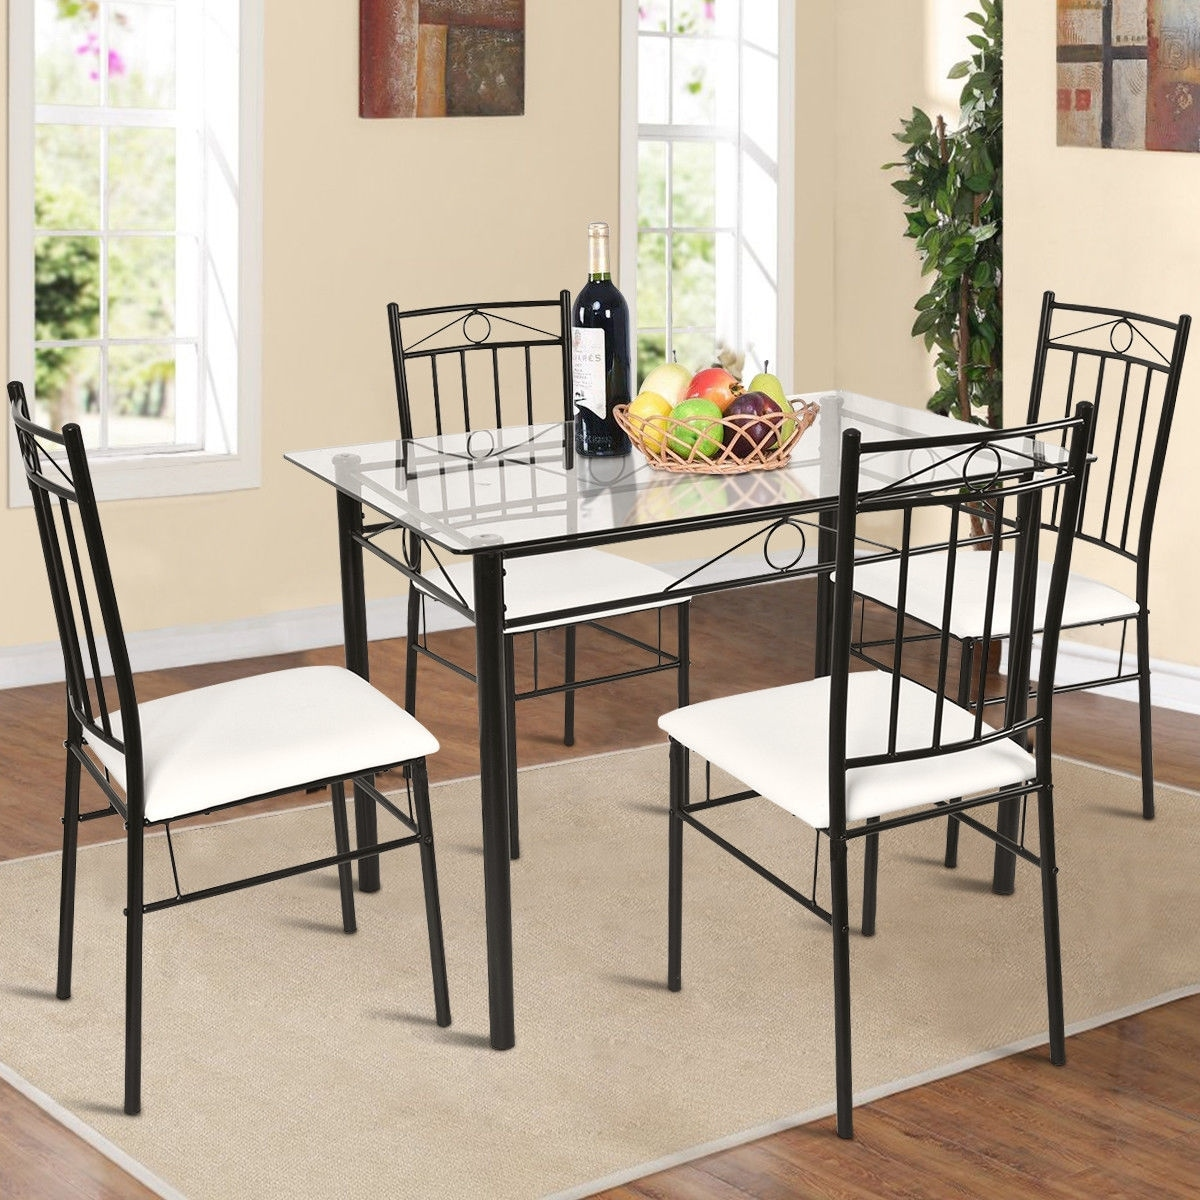 f87318cbcda Shop Costway 5 Piece Dining Set Glass Metal Table and 4 Chairs Kitchen  Breakfast Furniture - Free Shipping Today - Overstock - 21009938